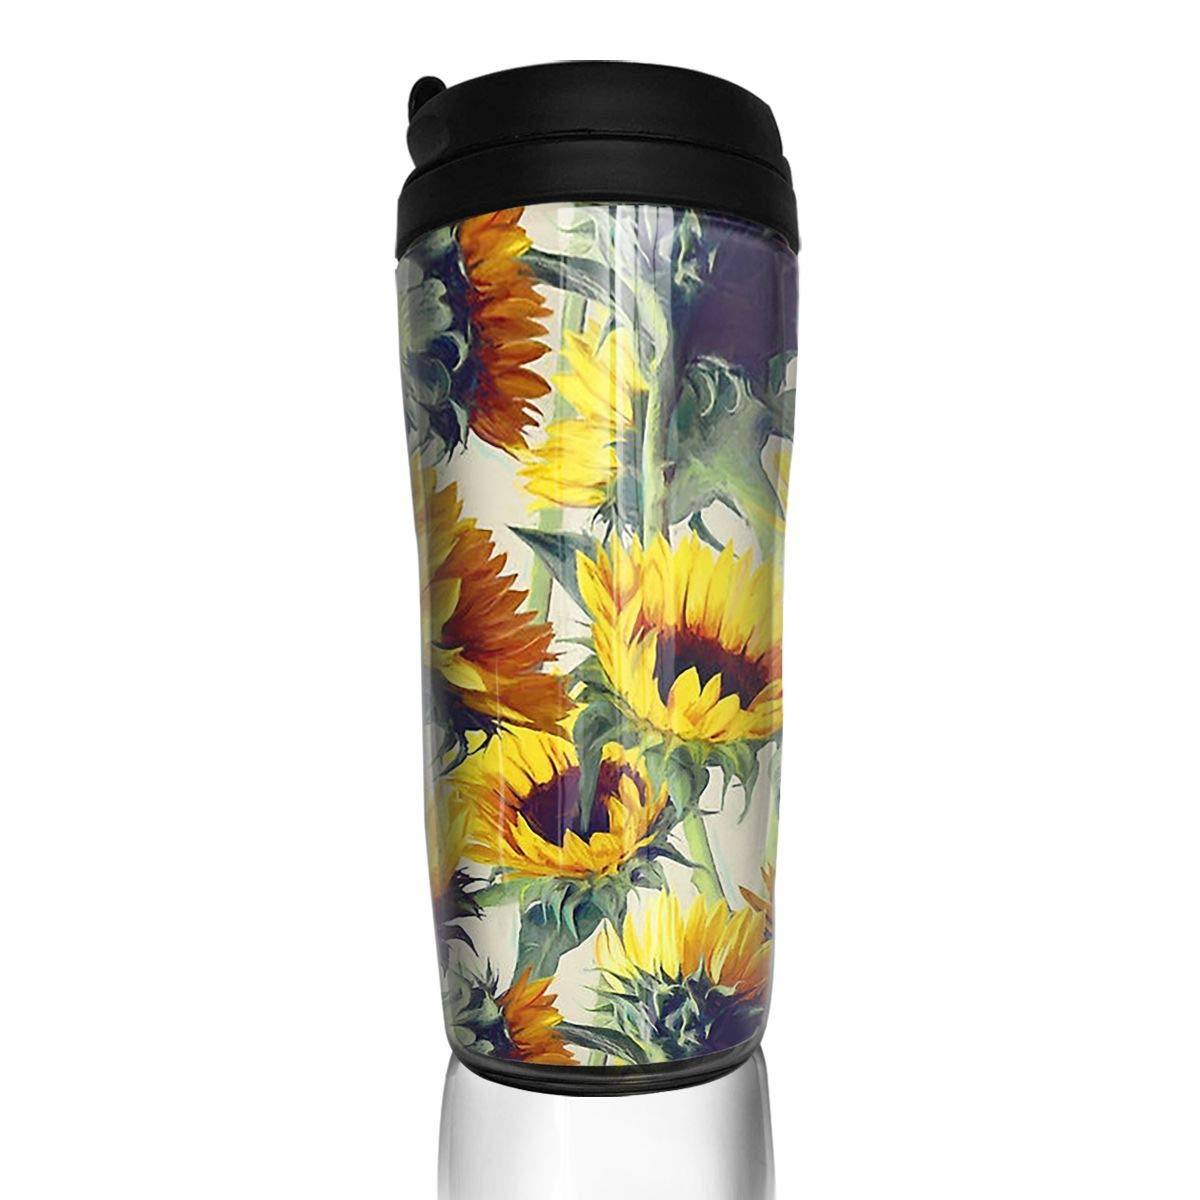 f456fa13290 Amazon.com: Wqi Home Blooming Sunflower Reusable Travel Coffee Mug Tea Cup  Water Bottle for Cold & Hot Drinks: Home & Kitchen